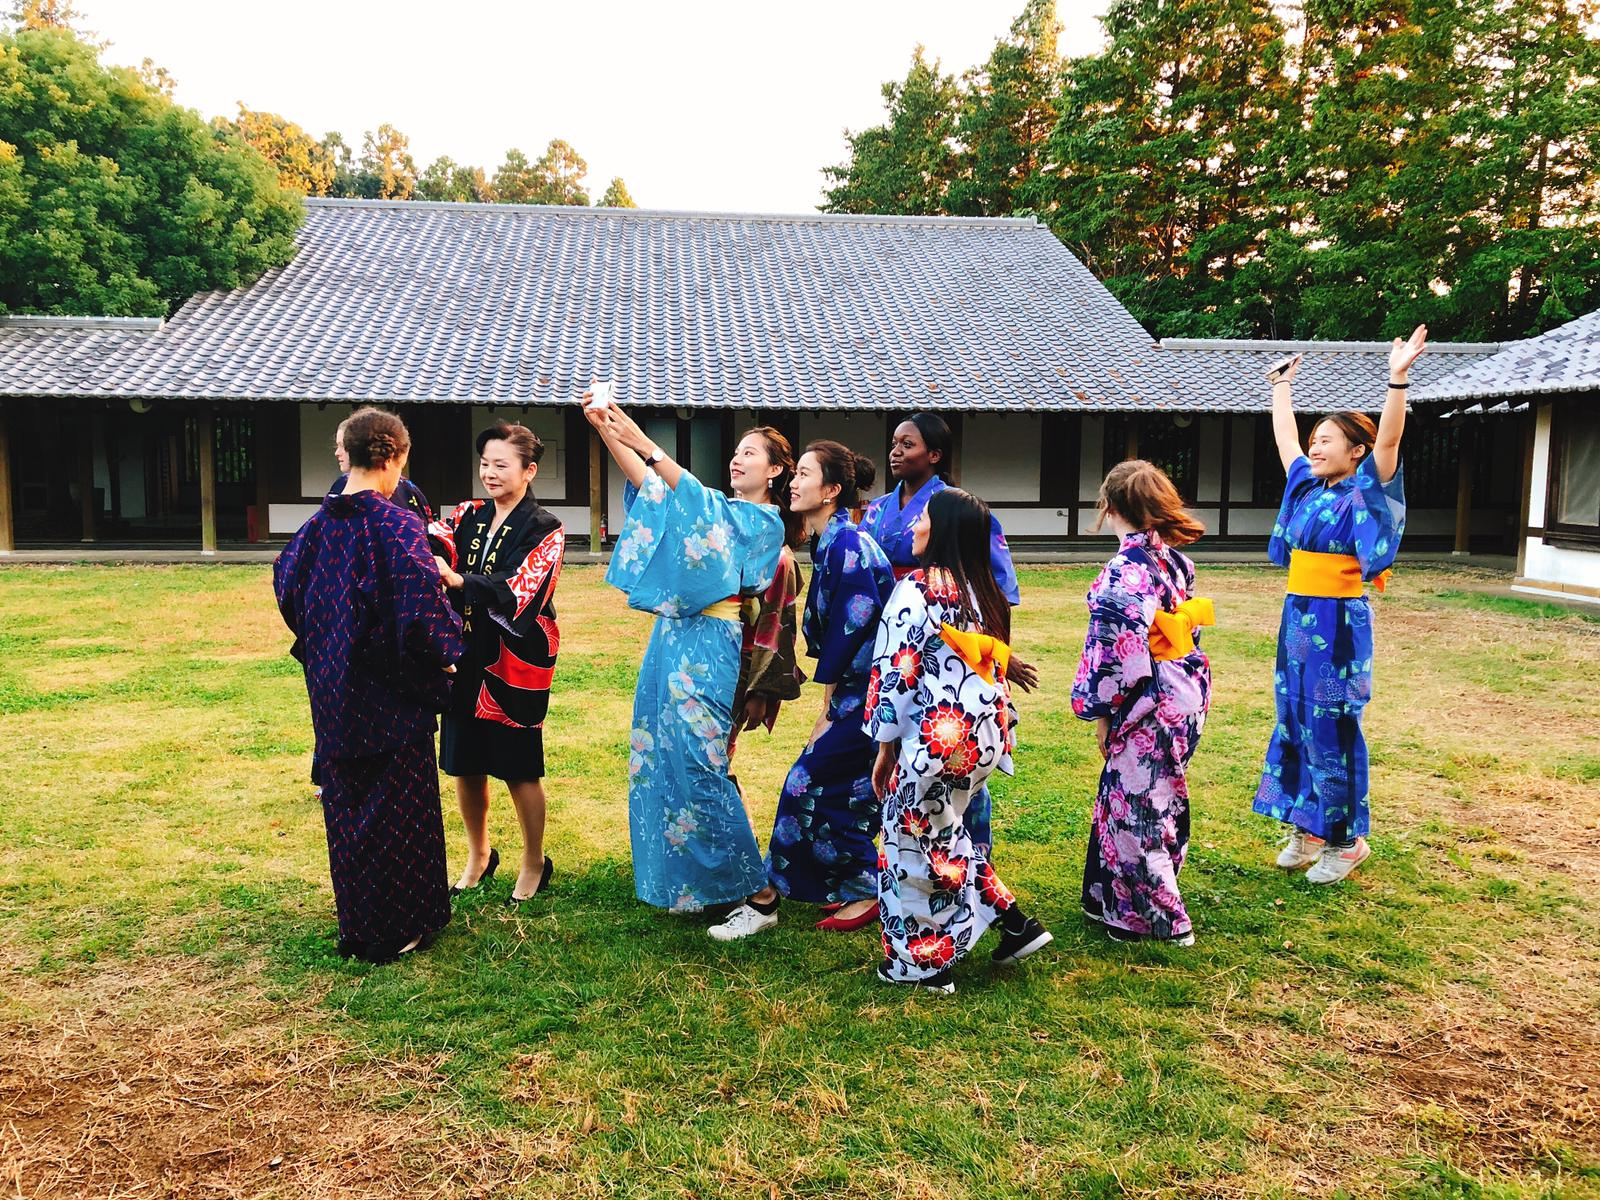 A group of people taking photos in Japanese yukata.